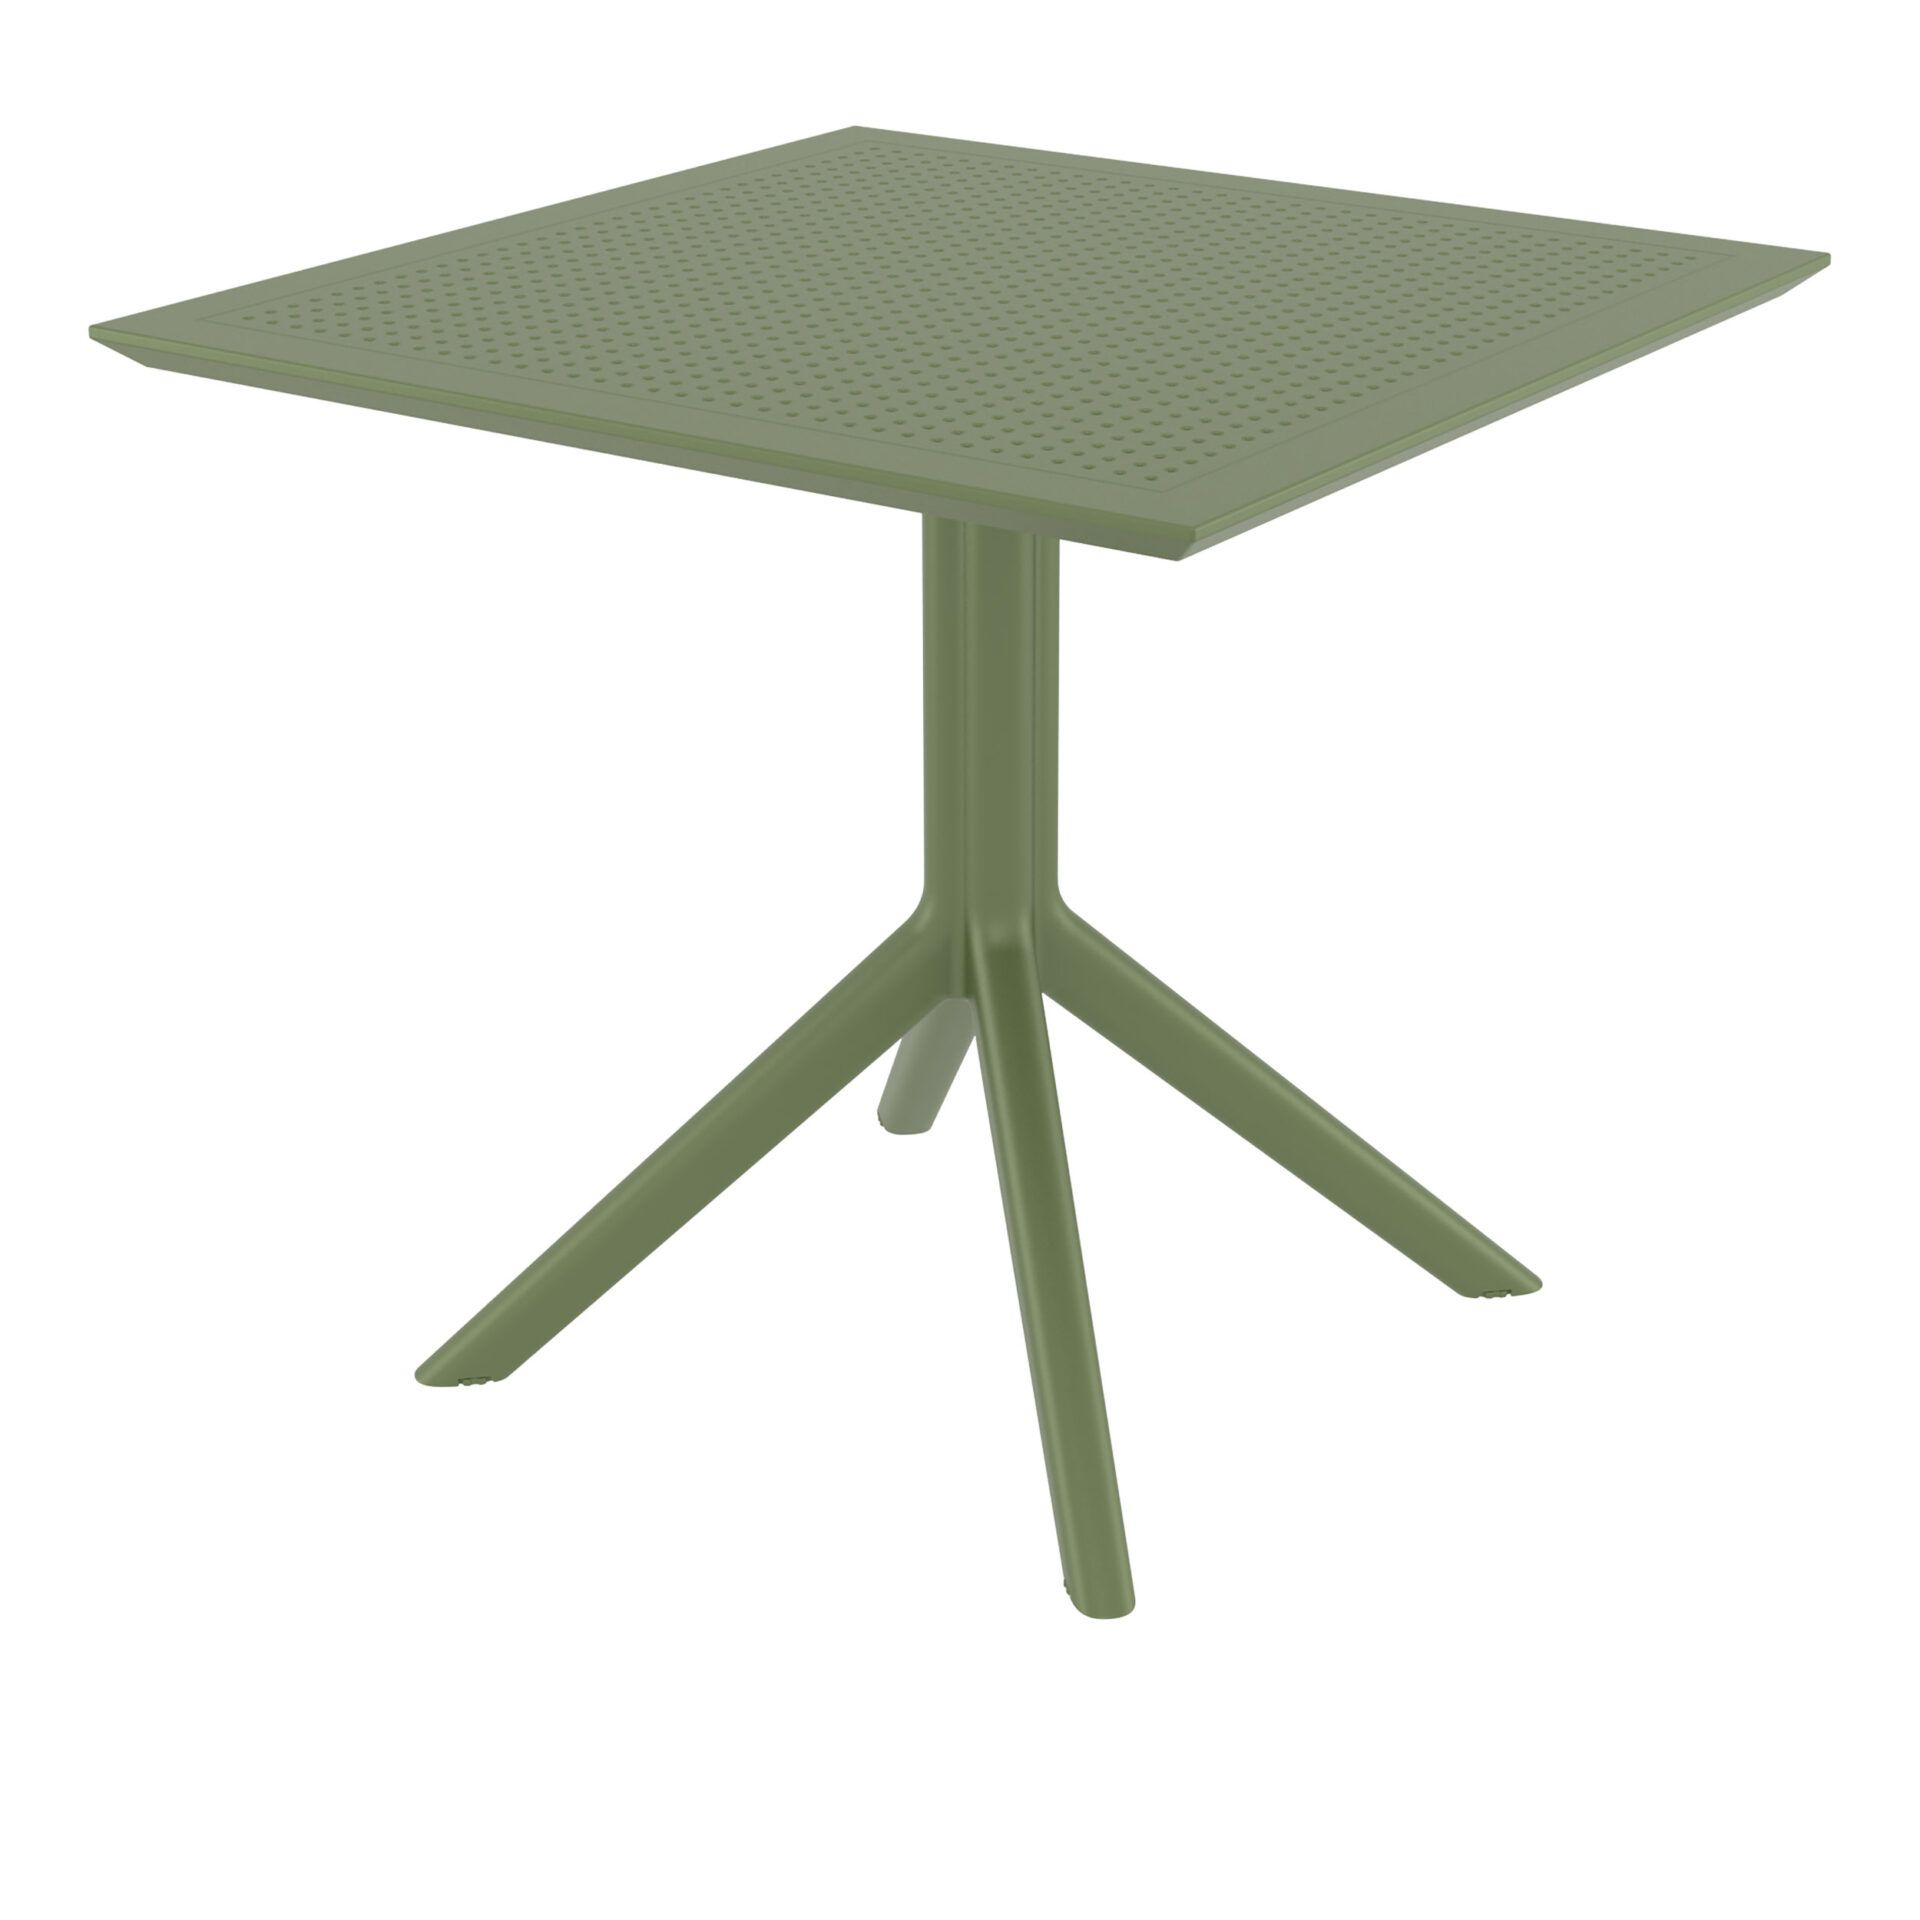 Sky Table 80 - Olive Green